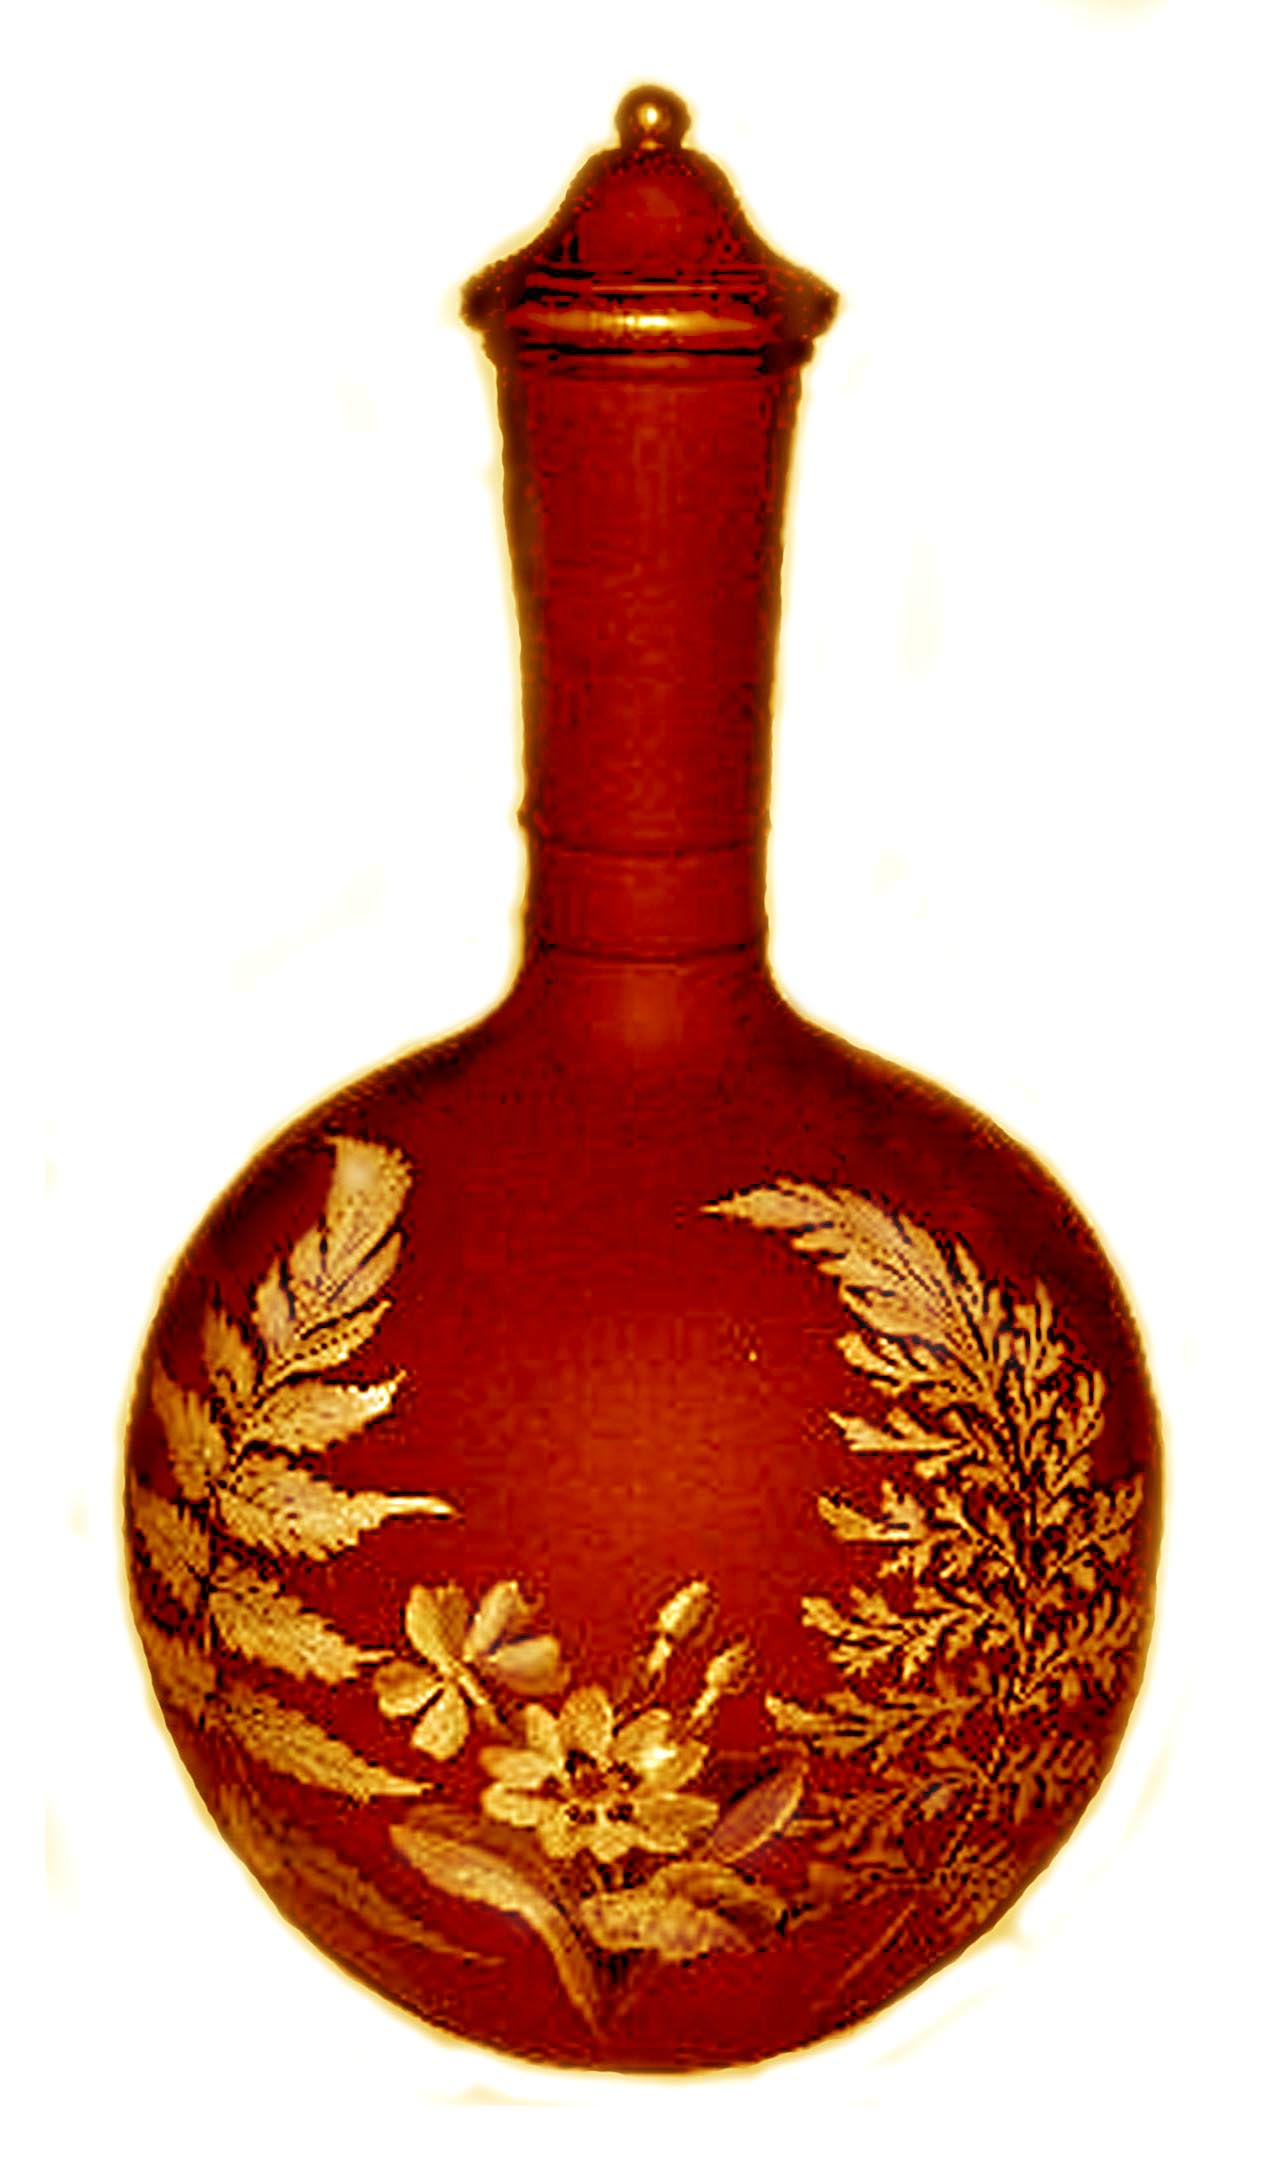 Torquay Terracotta Company. A bottle vase decorated by A. Fisher.